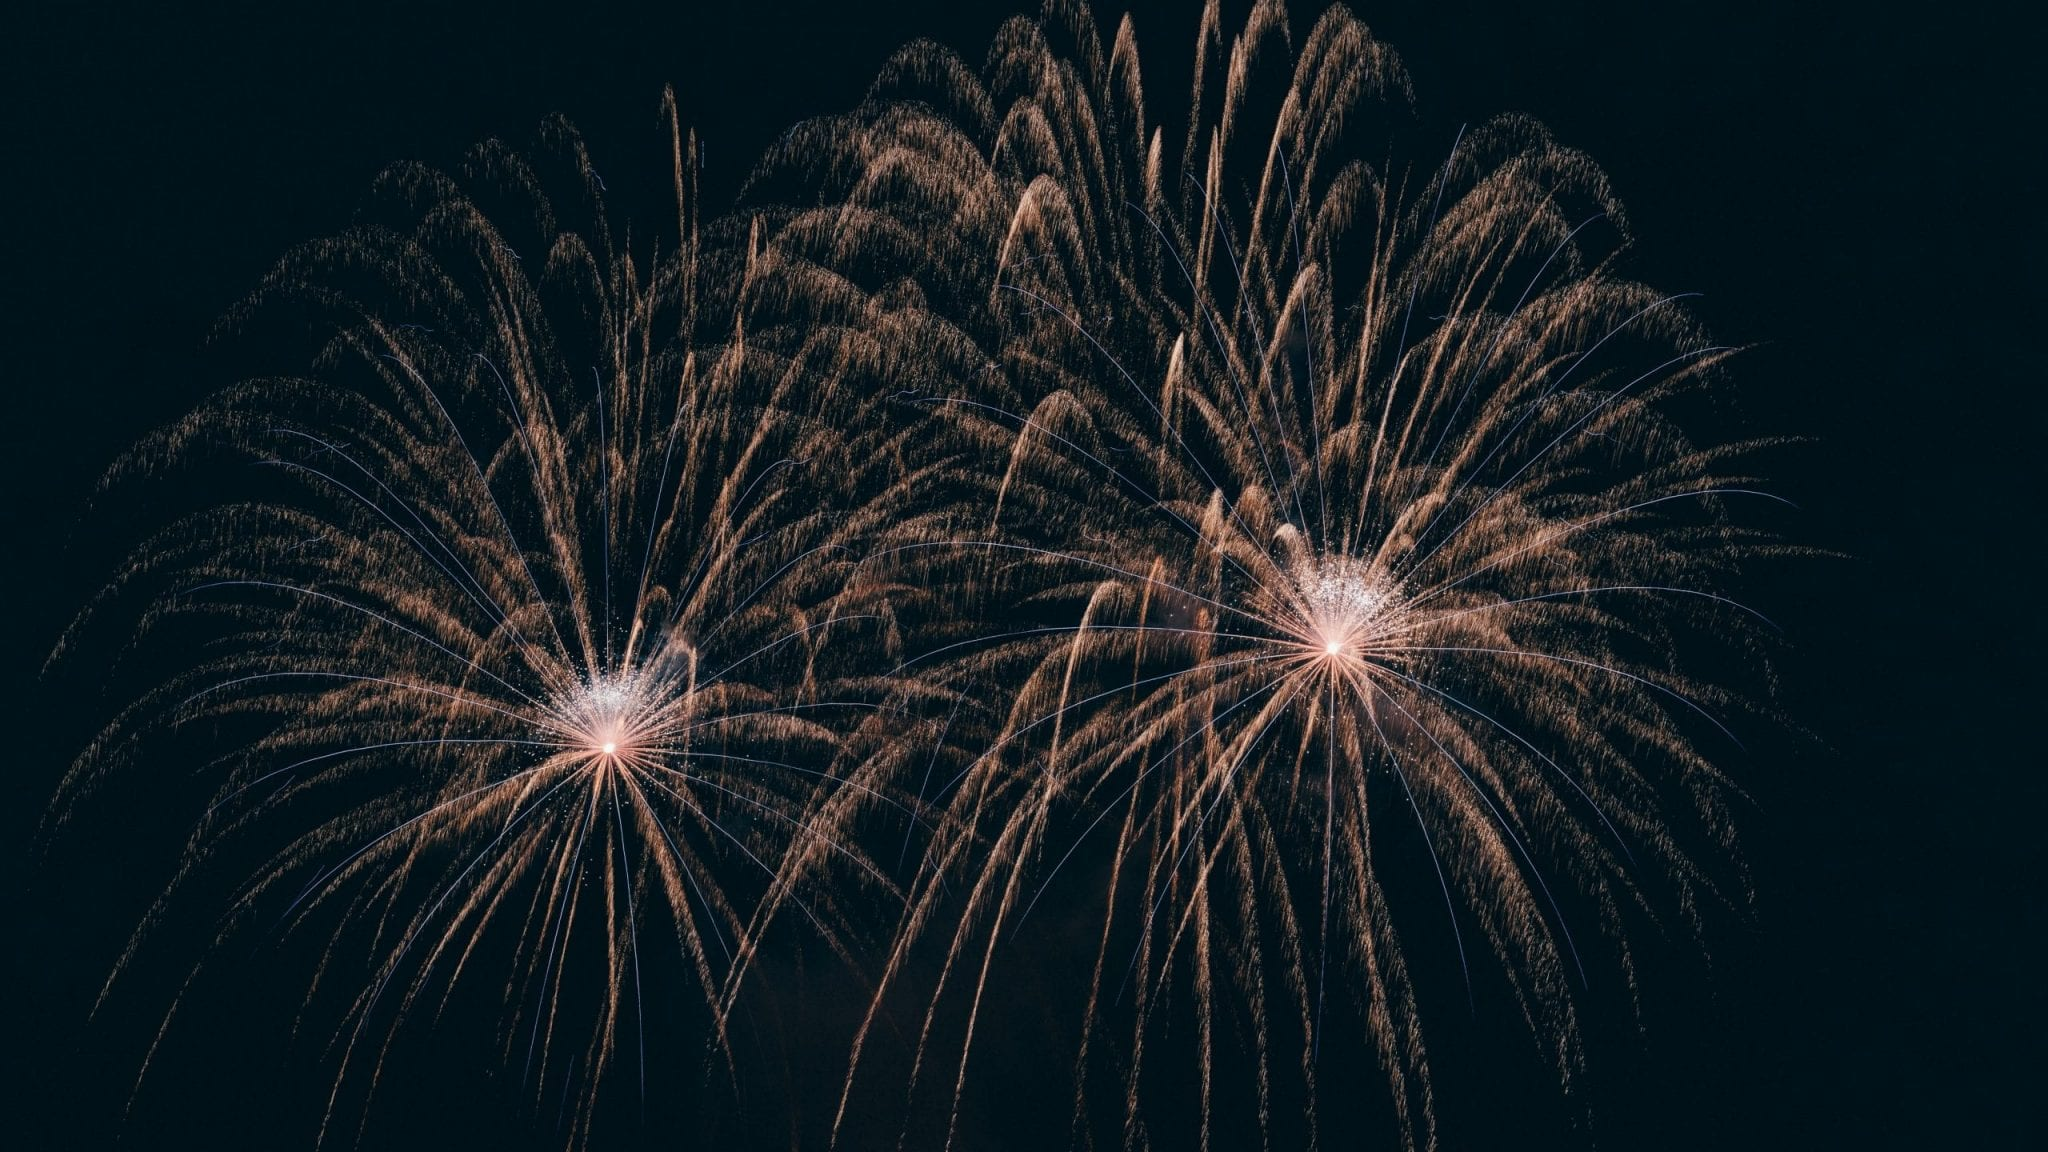 fireworks during night